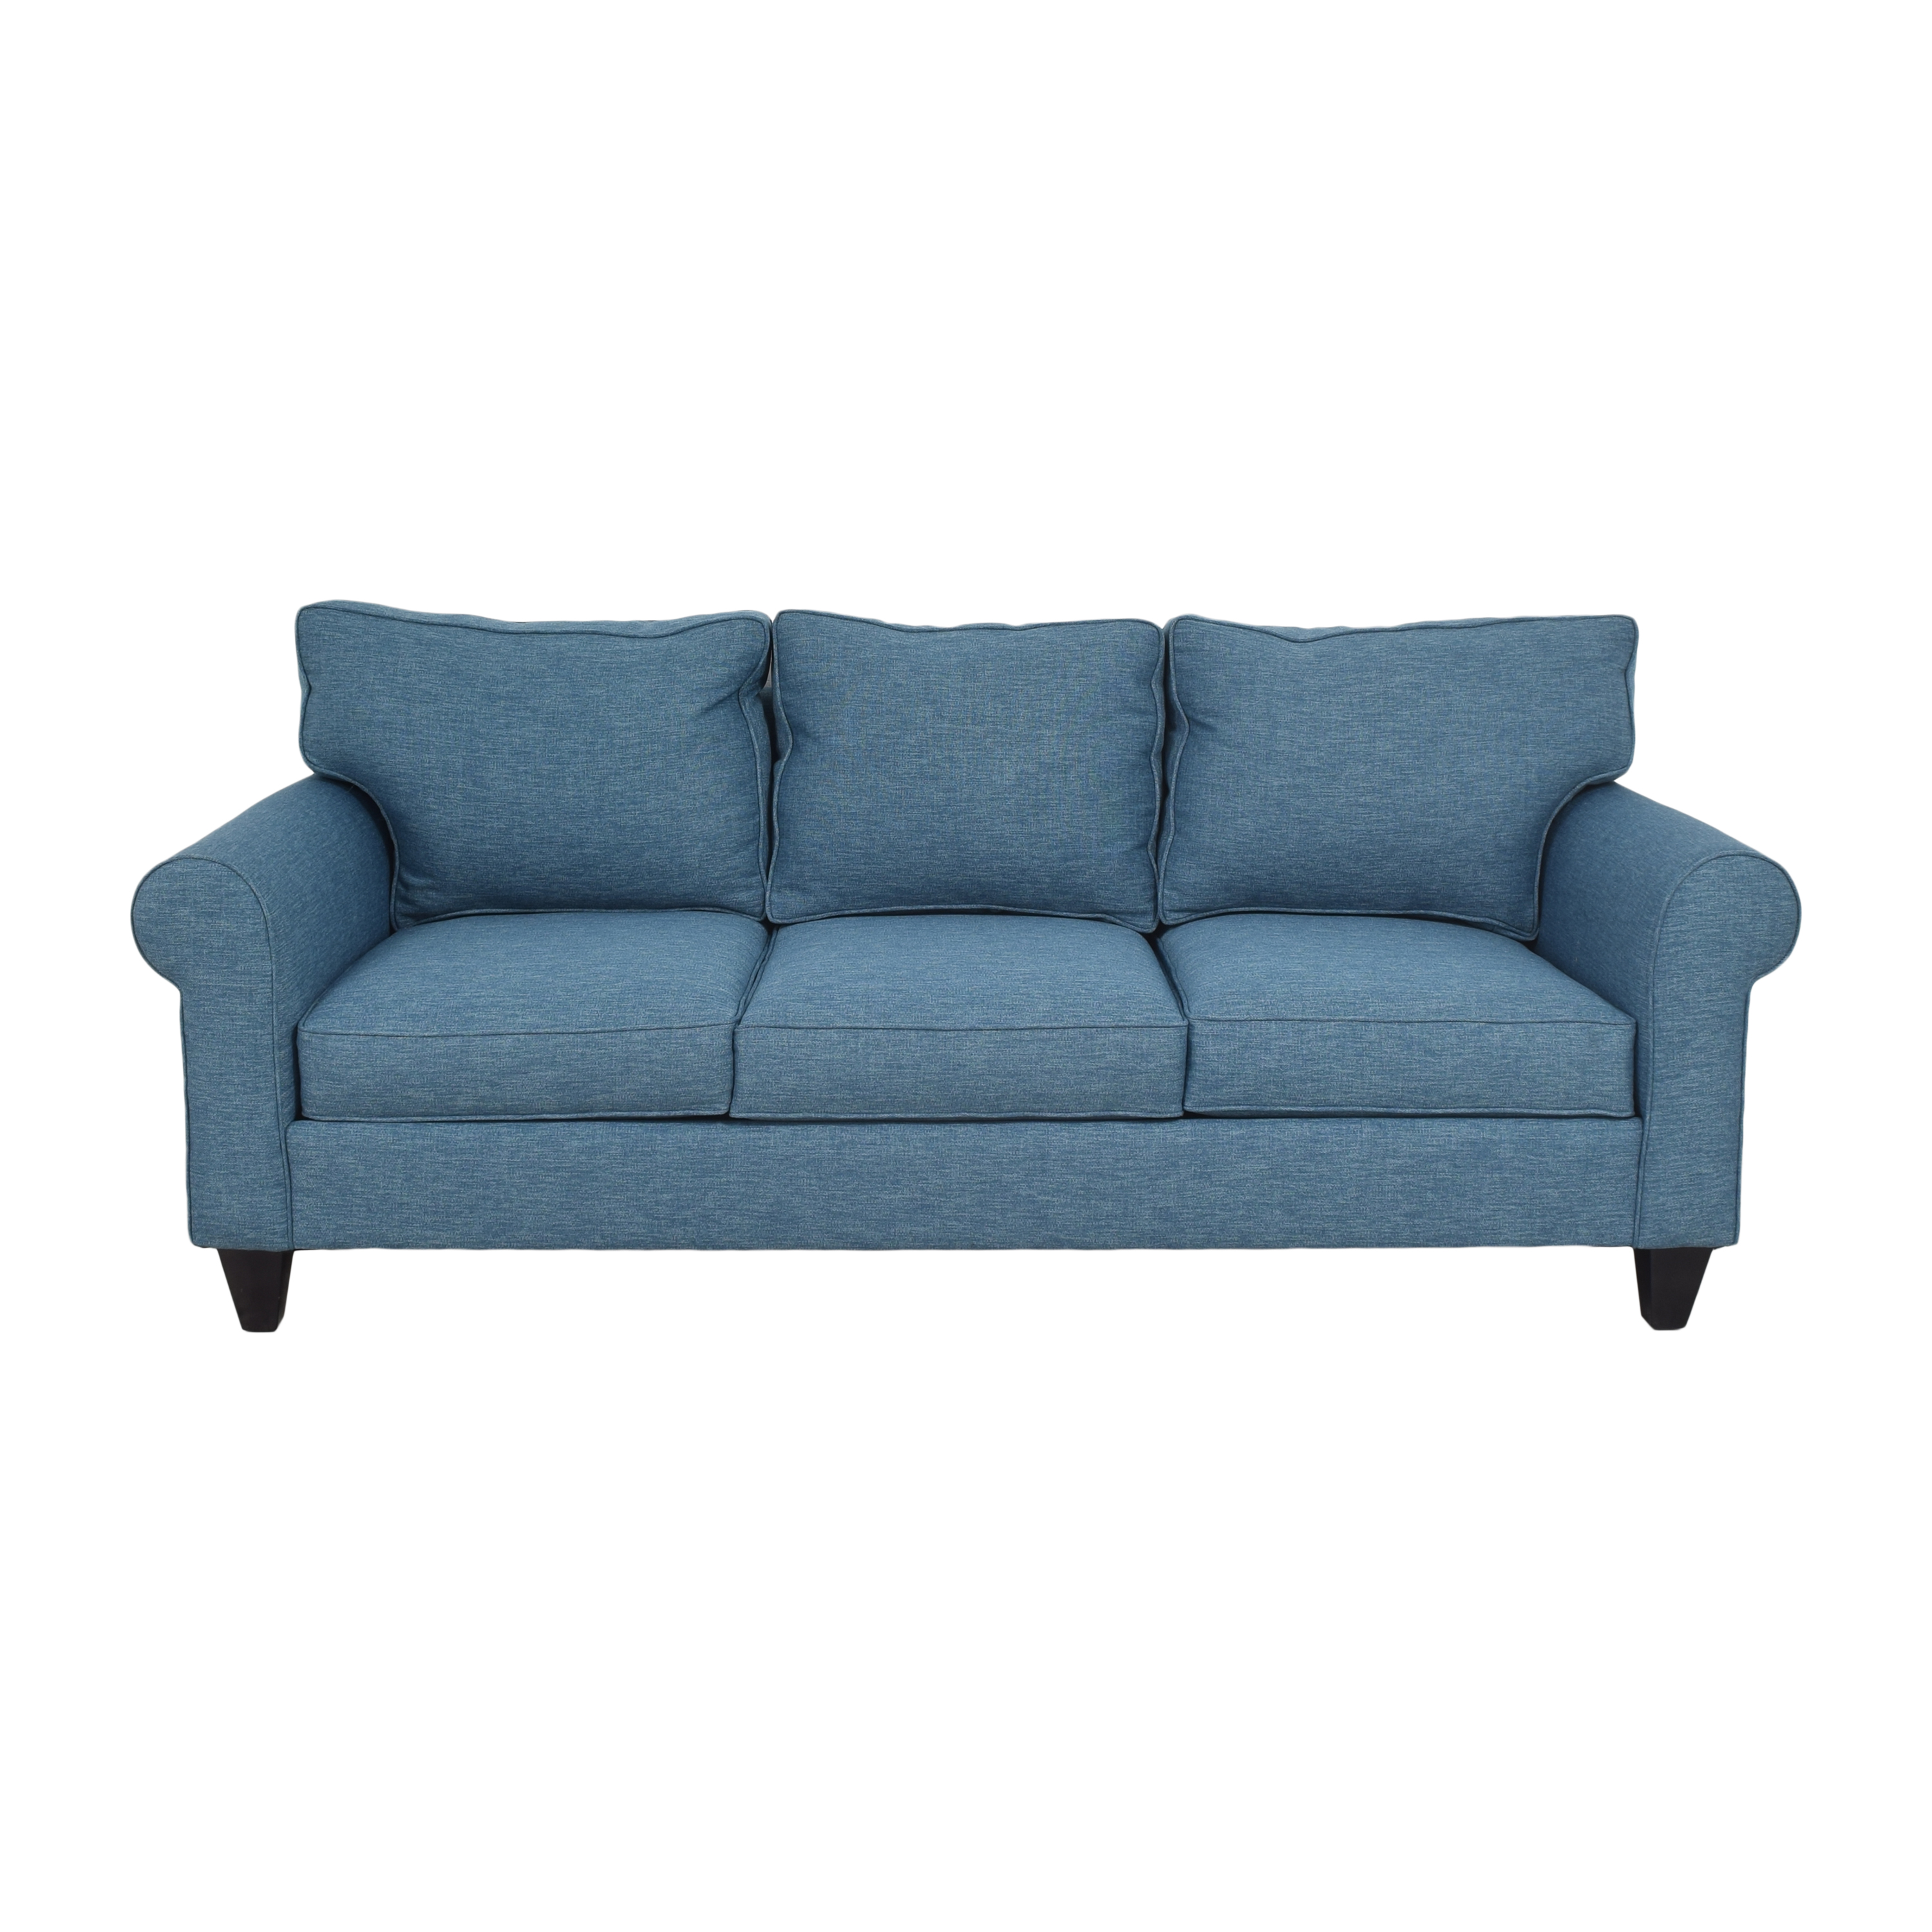 DreamSofa Dreamsofa Roll Arm Sofa blue